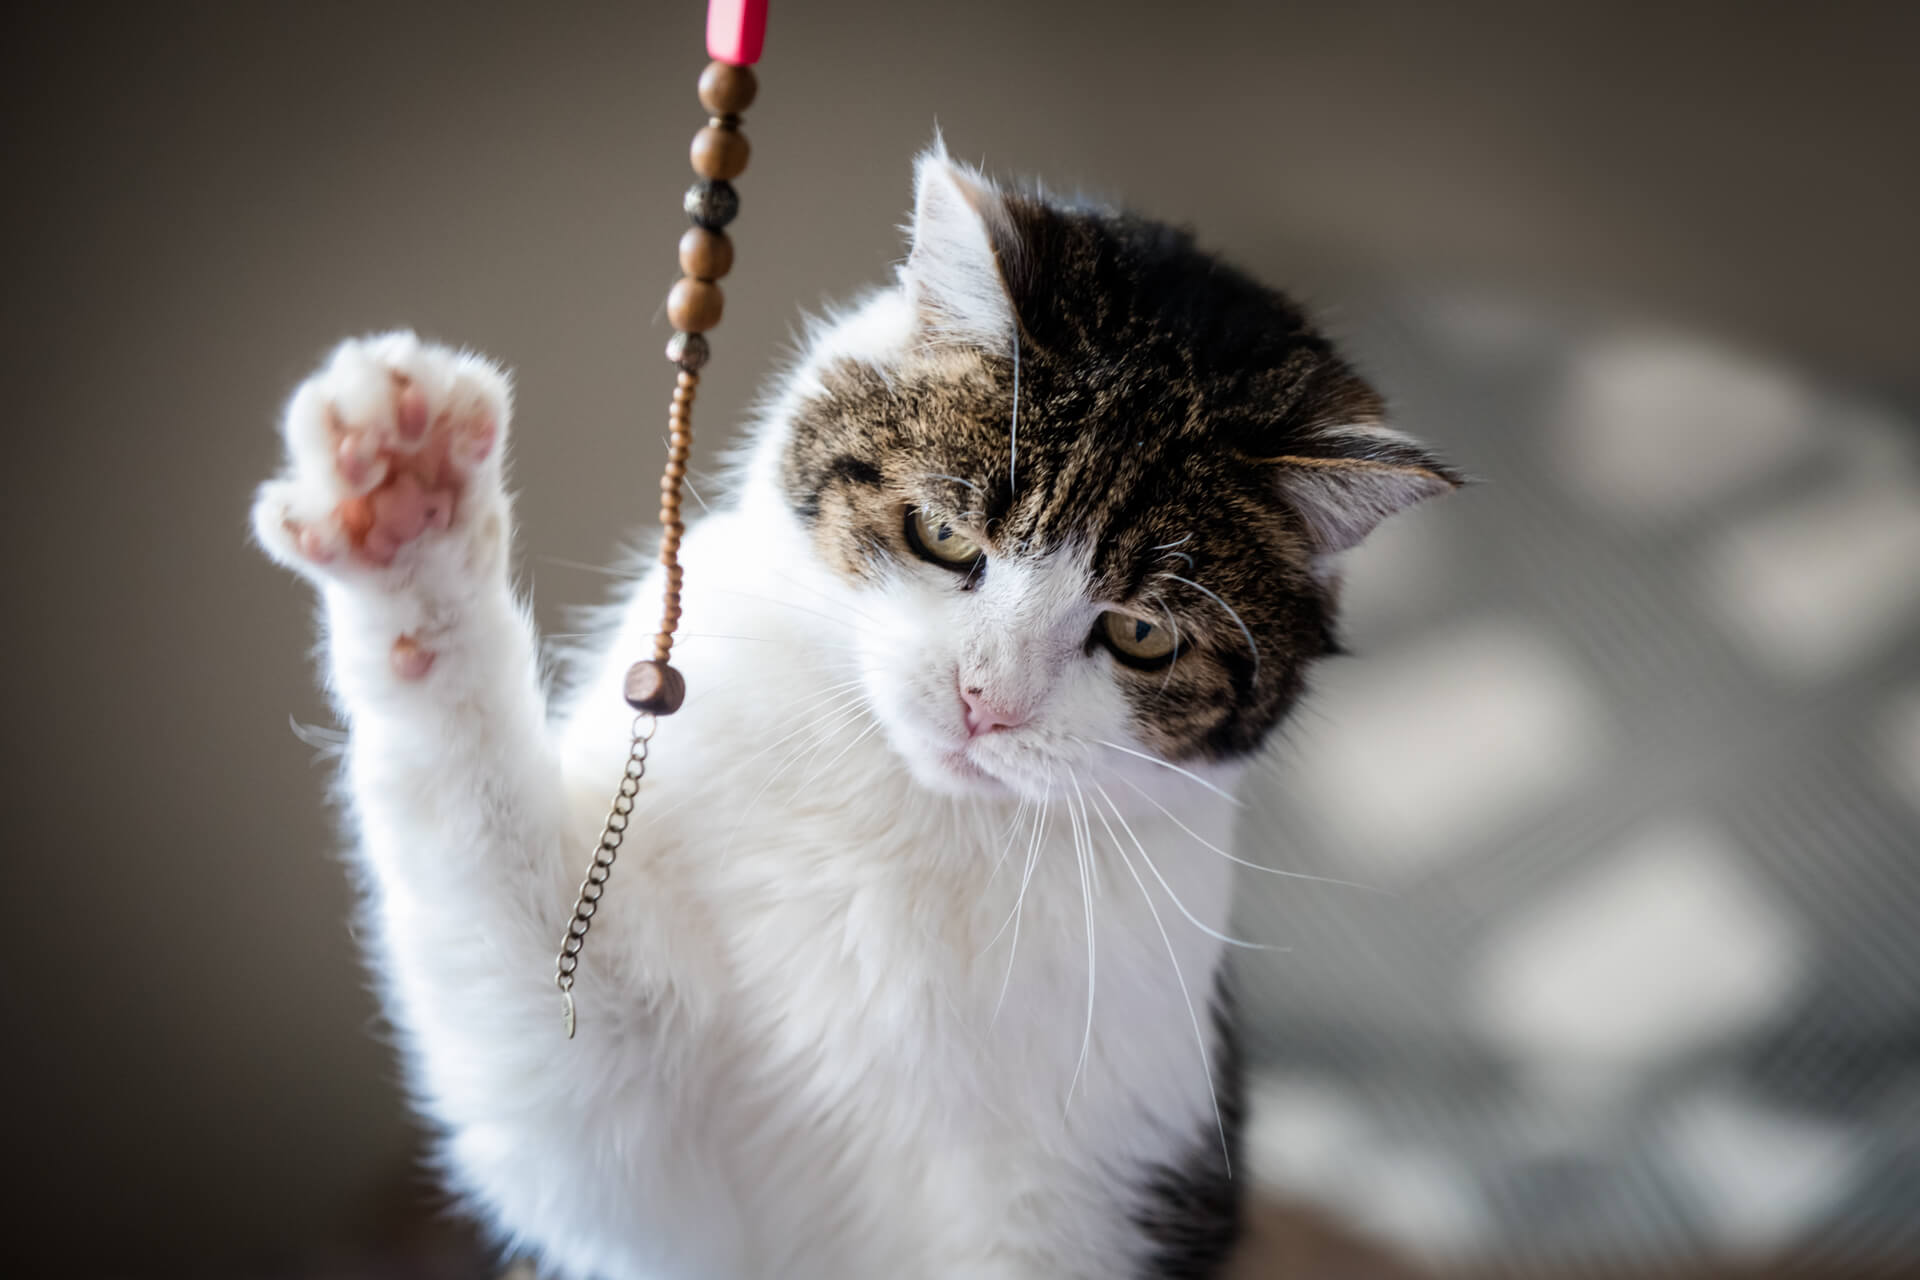 cat swiping his paw at a string